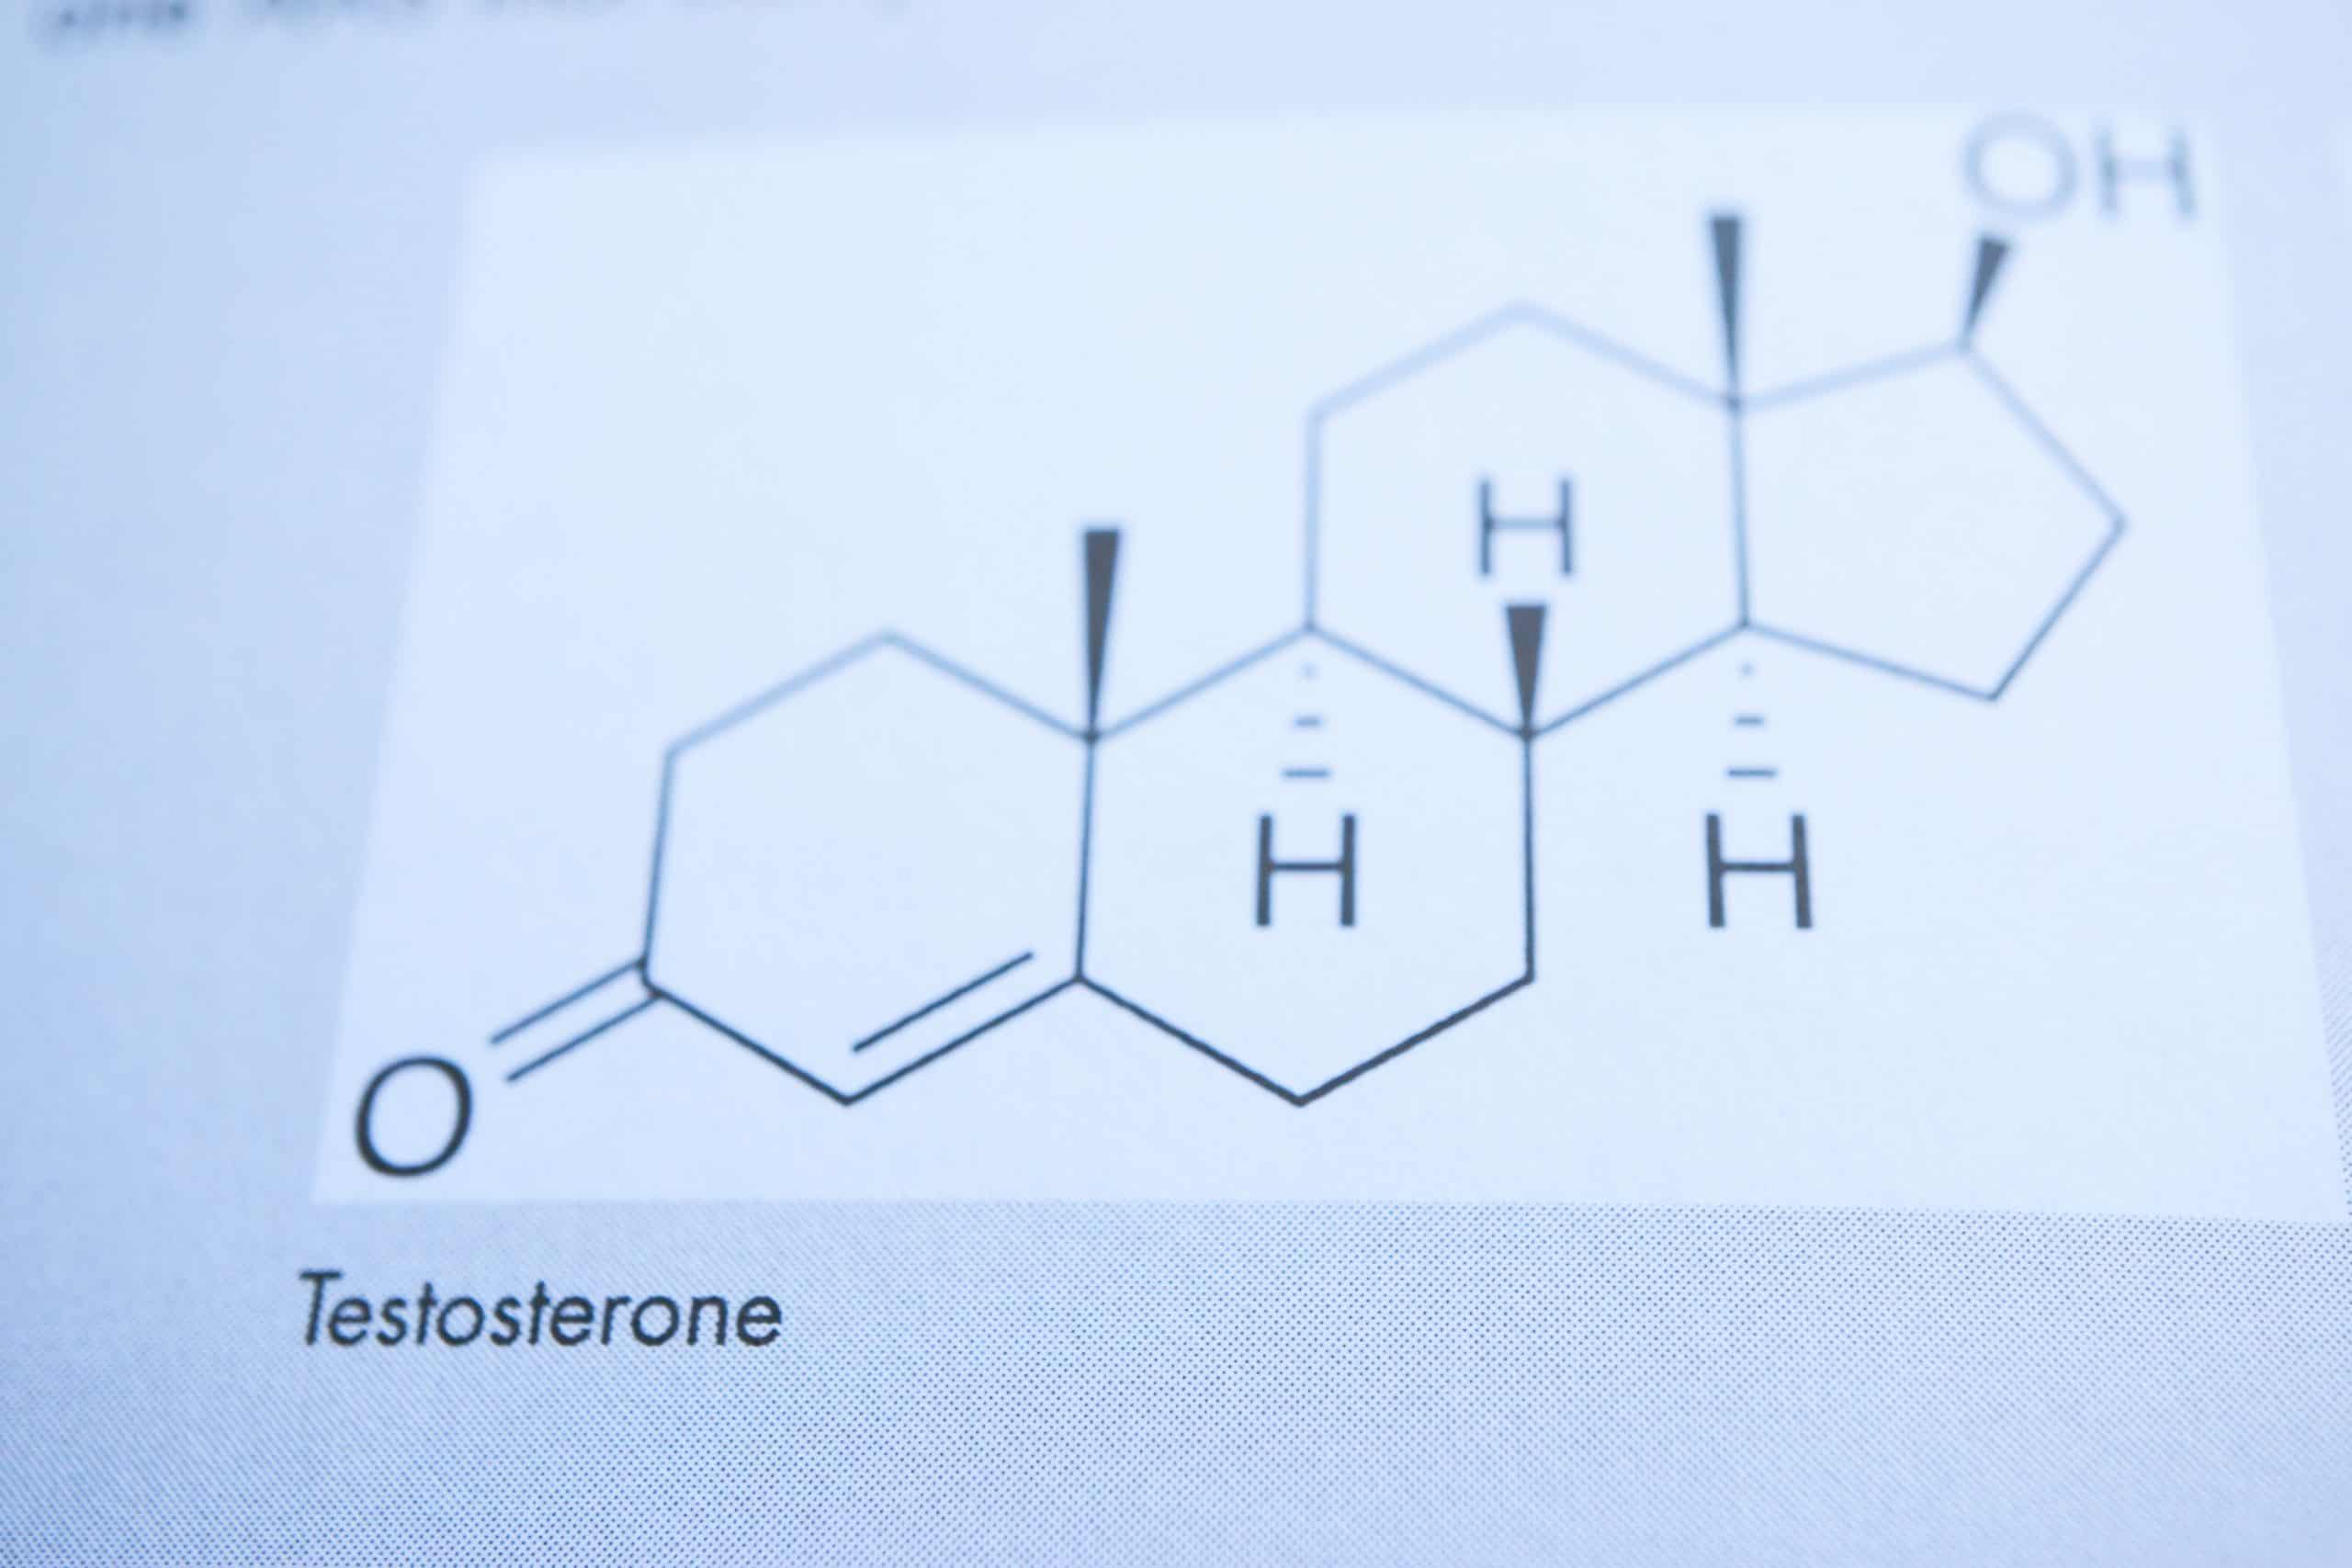 Chemical diagram of testosterone hormone